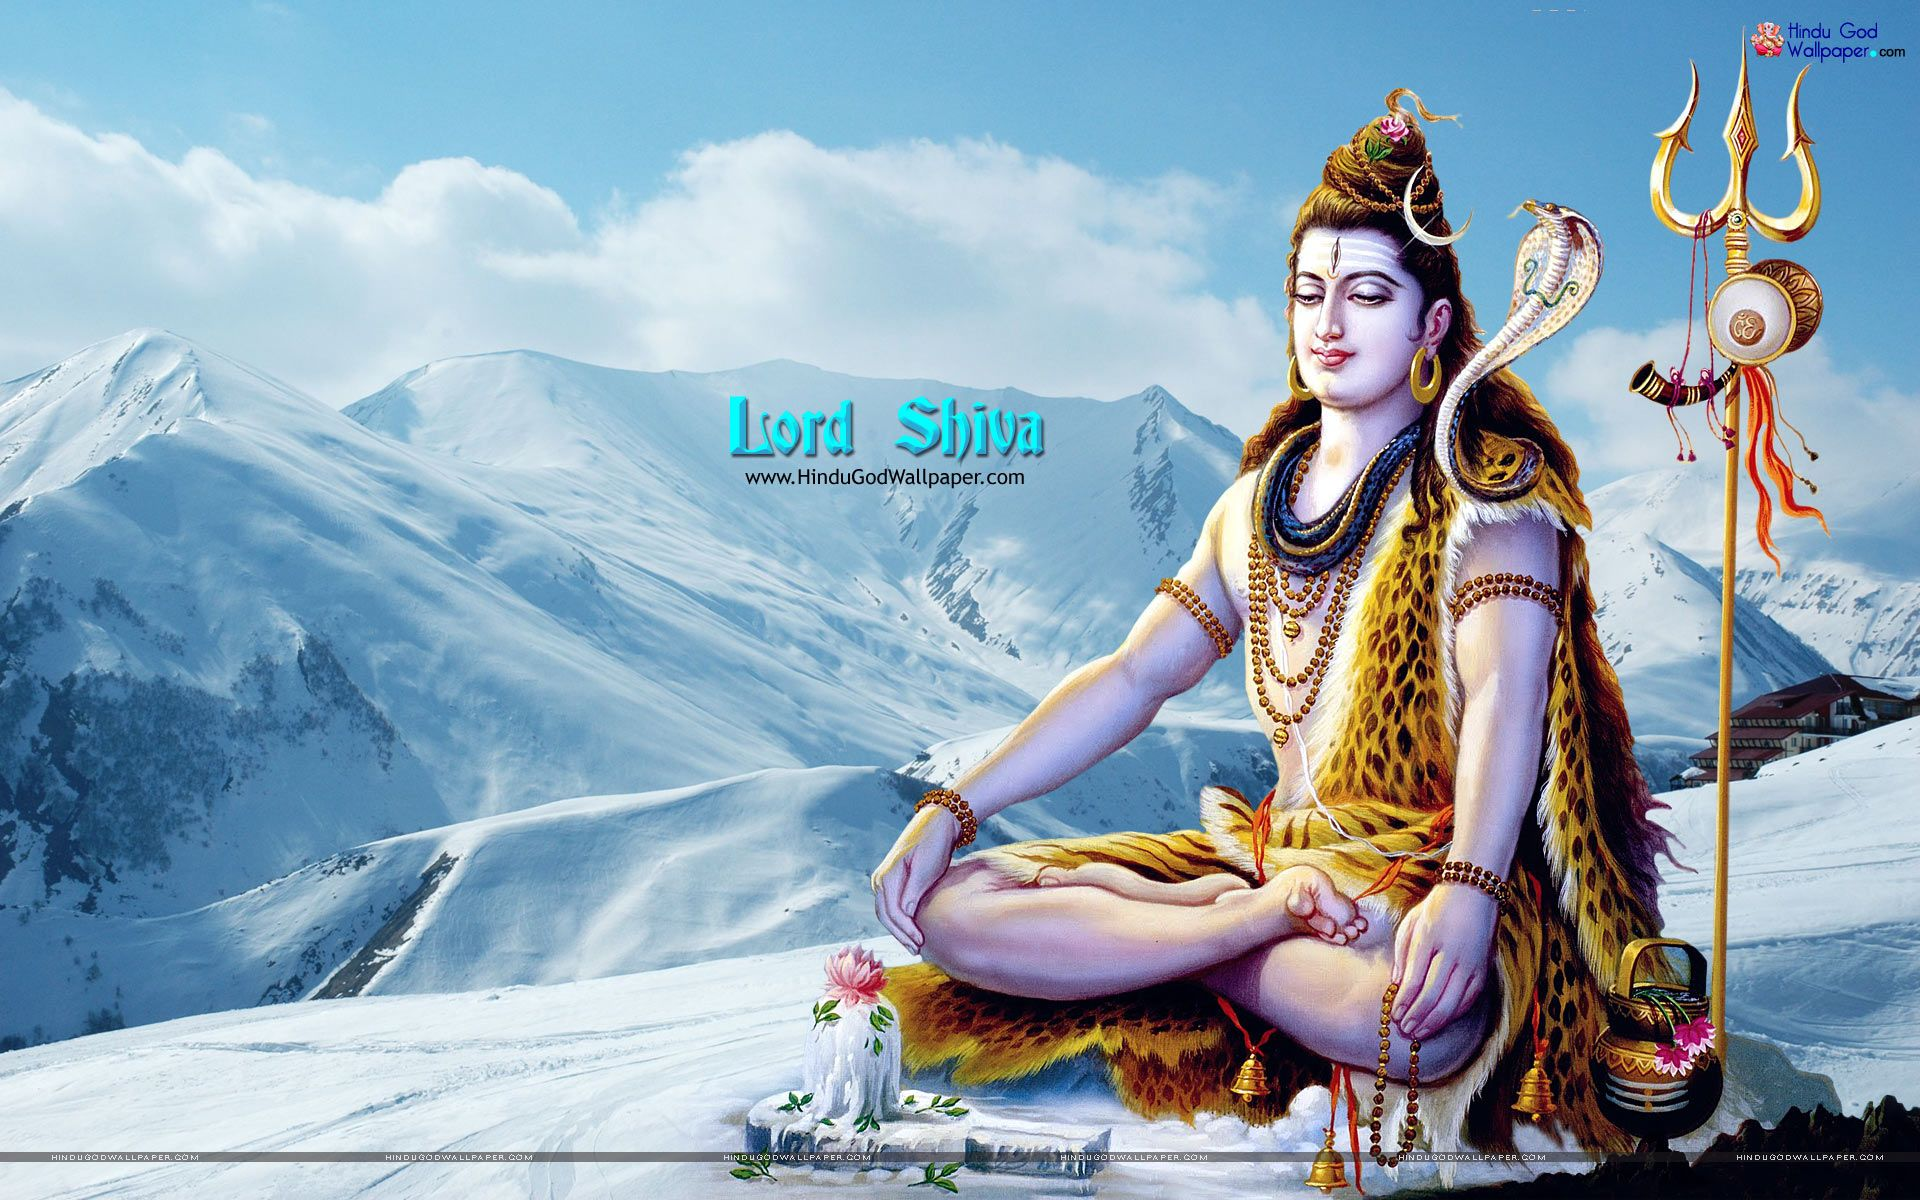 Download Wallpaper Lord Shiv - 1c2f0865e915e8a2f5531cec167d9d74  Gallery_475474.jpg